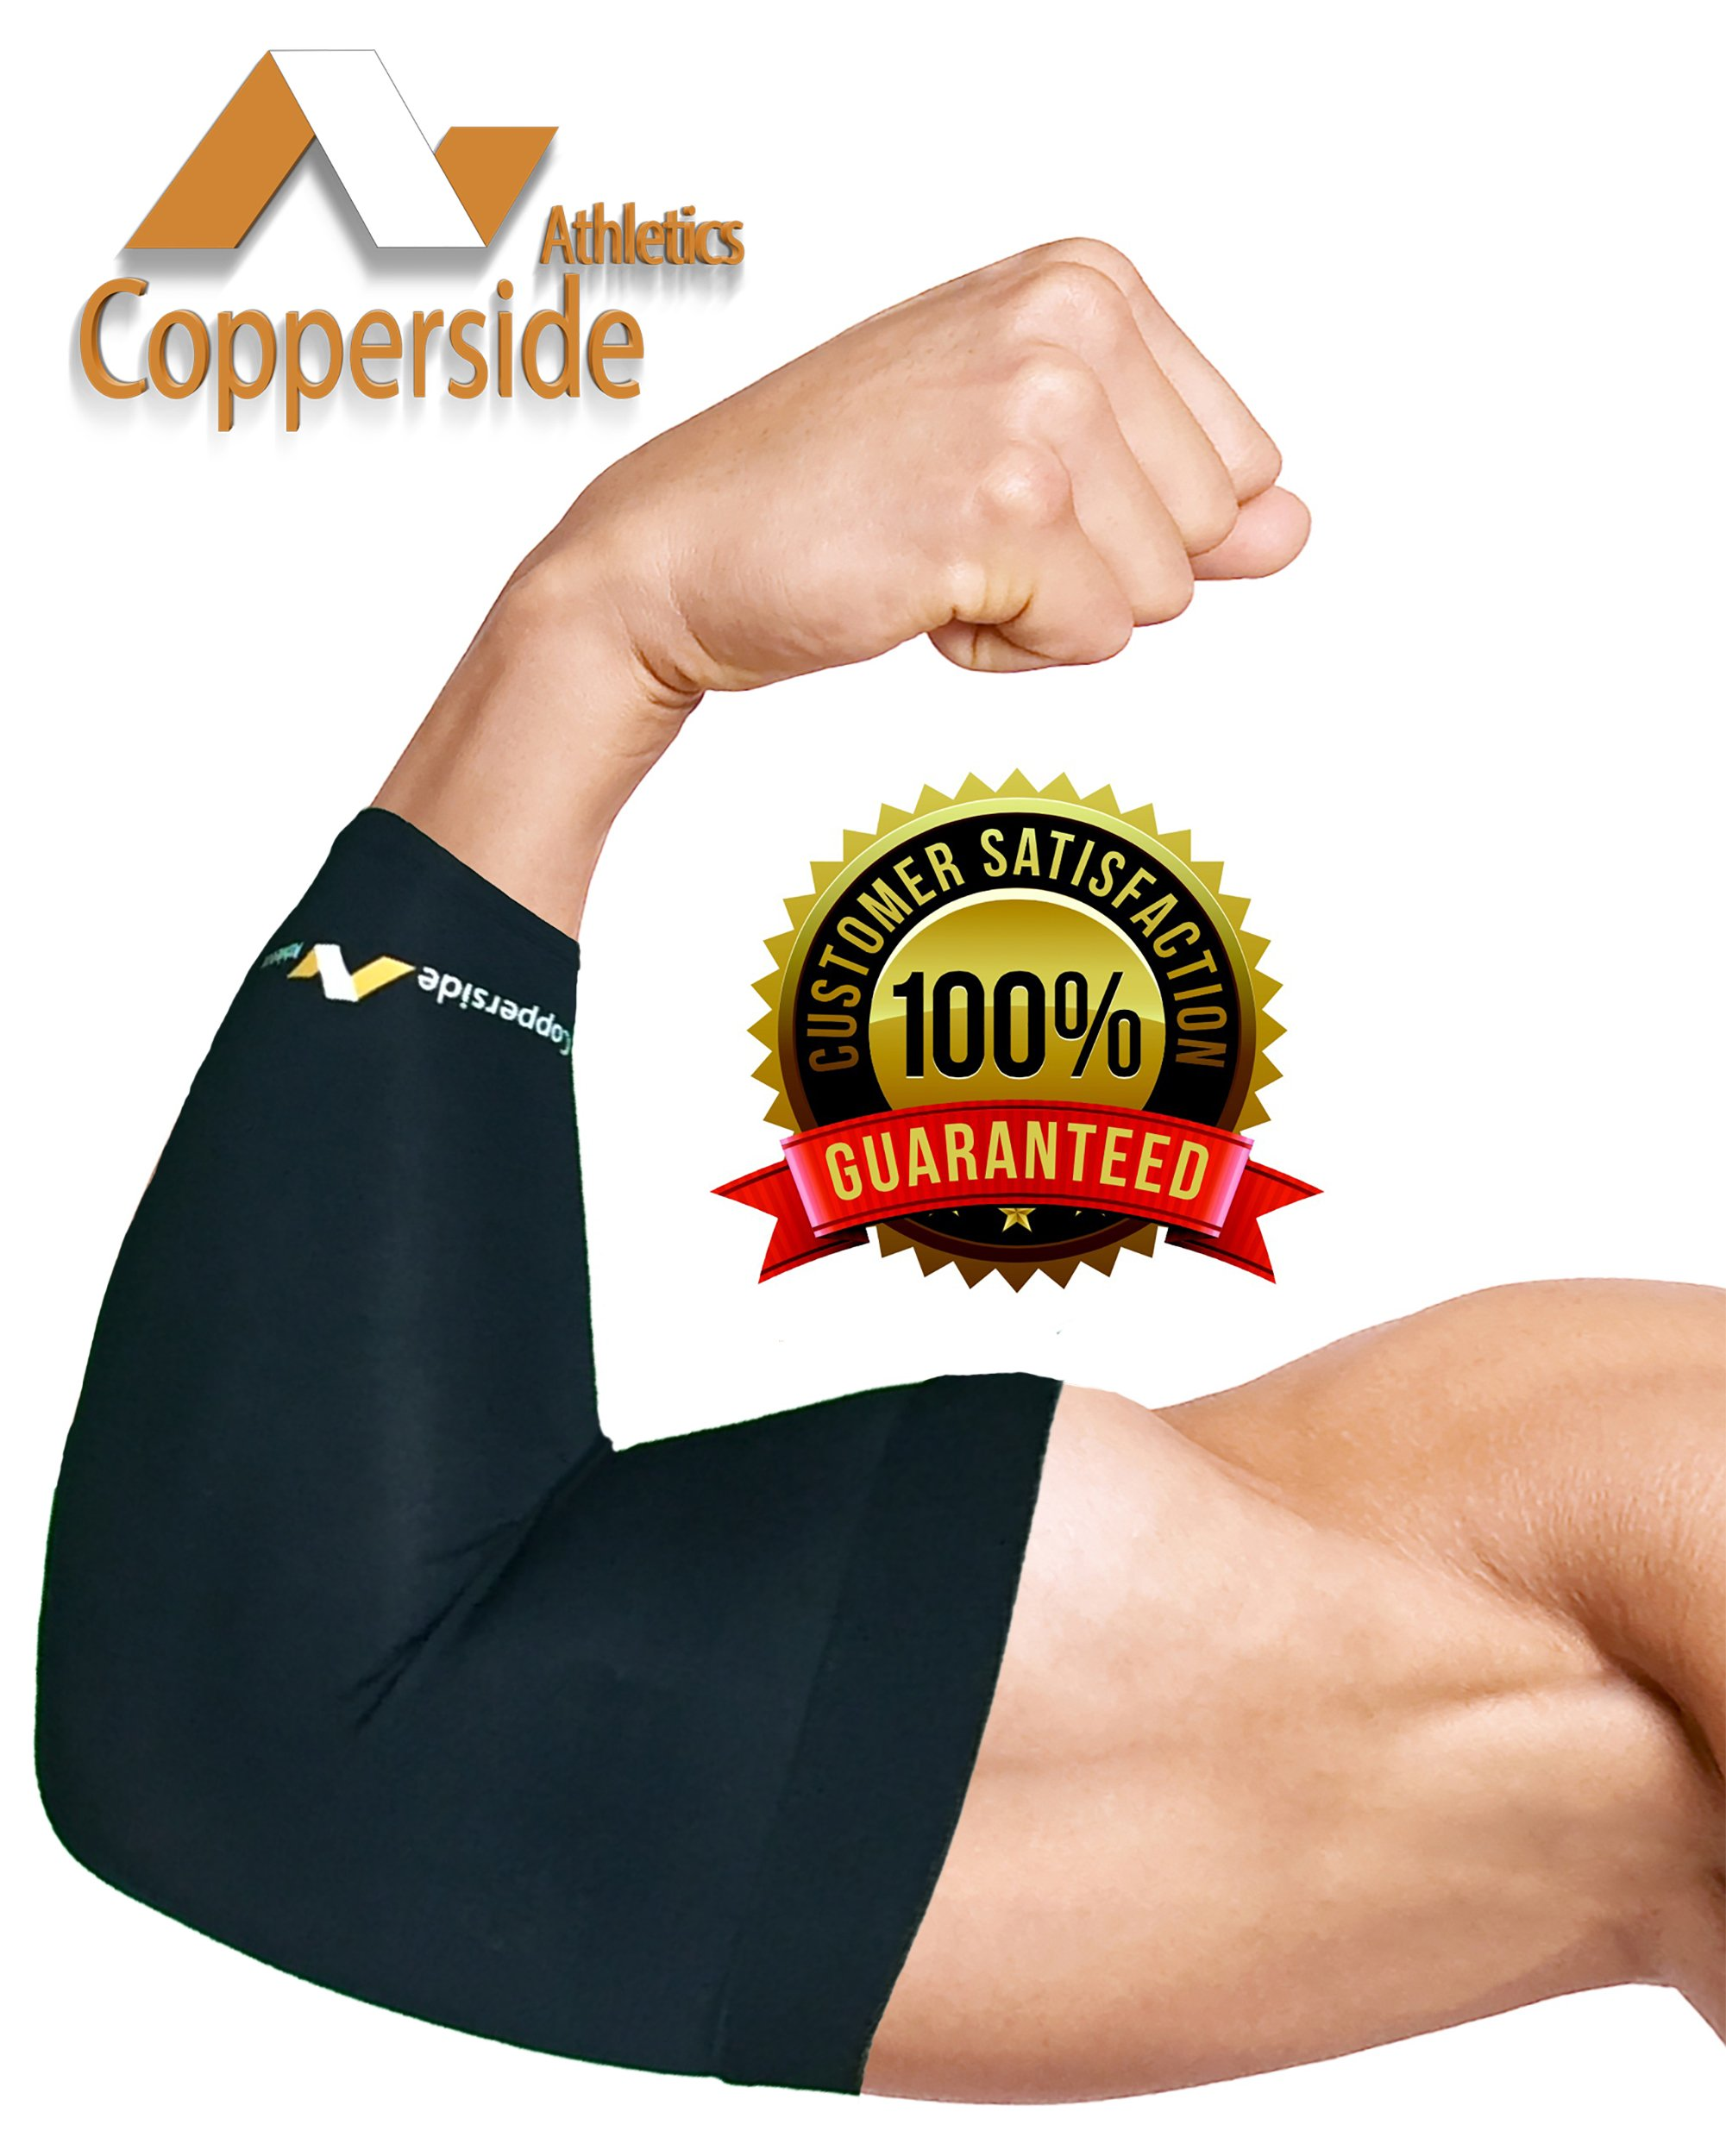 20 Pack Copper Elbow Compression Sleeve*Make Money Now!*(Copperside)Retail Bulk Wholesale for Kinesio, Physio Therapy, Chiropractors, Gyms, Free Display Case with Some Purchases. Full Support Provided by Copperside Athletics (Image #3)